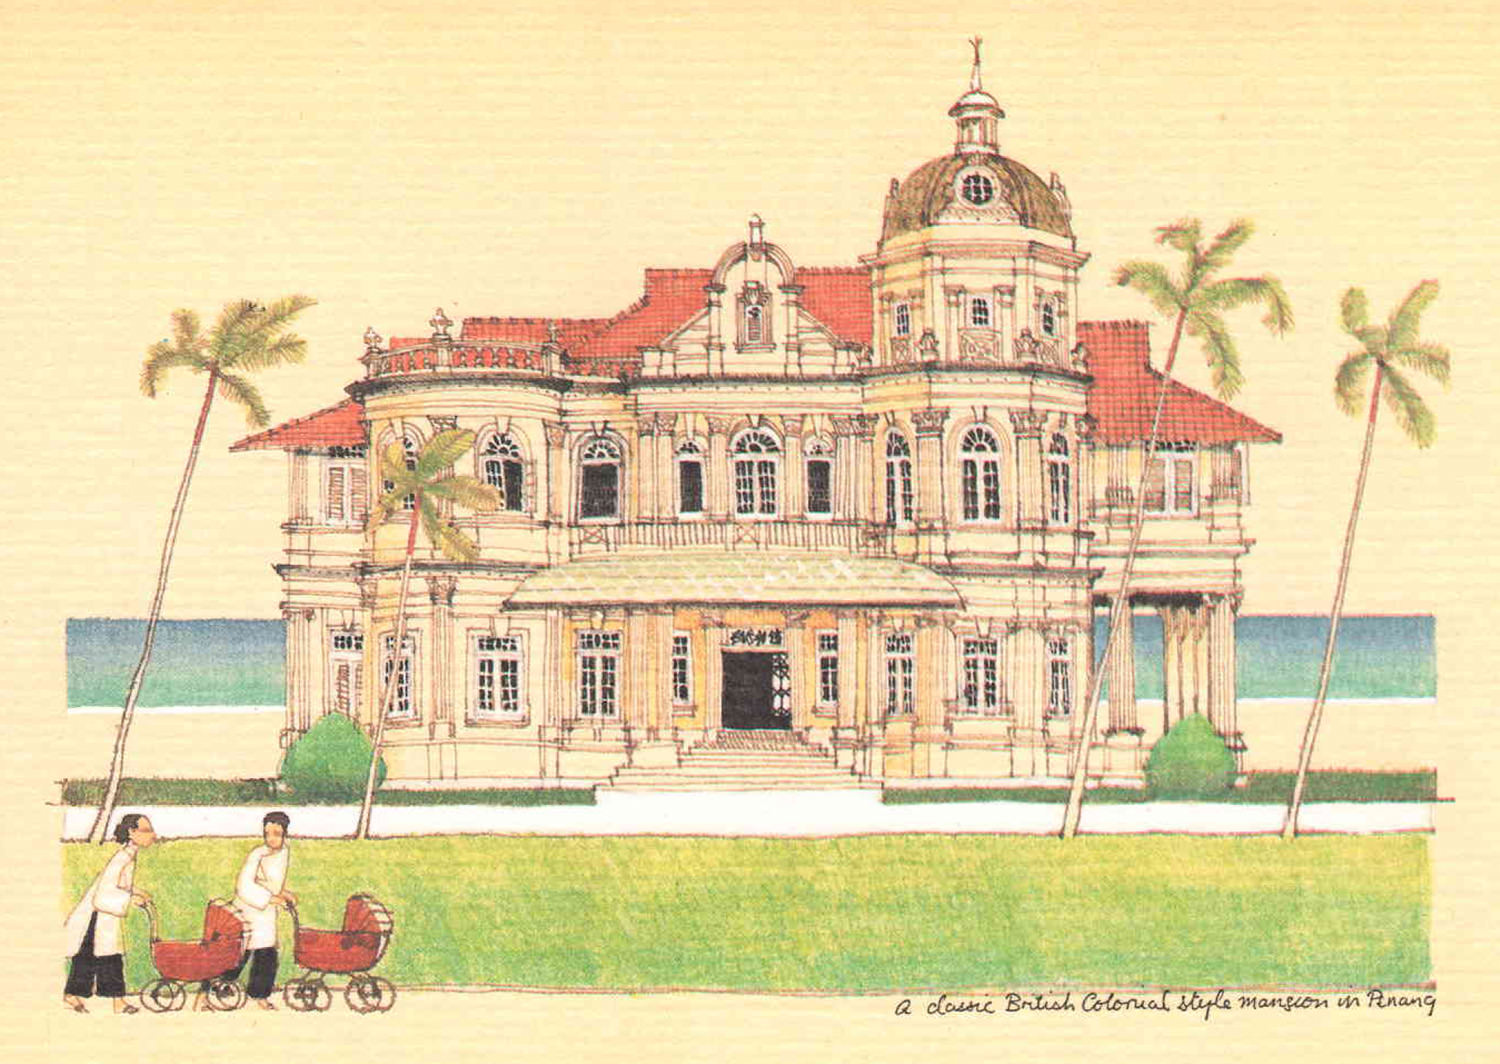 A Classic British colonial Style Mansion in Penang British colonial Malaya architecture painting art architect malaysia